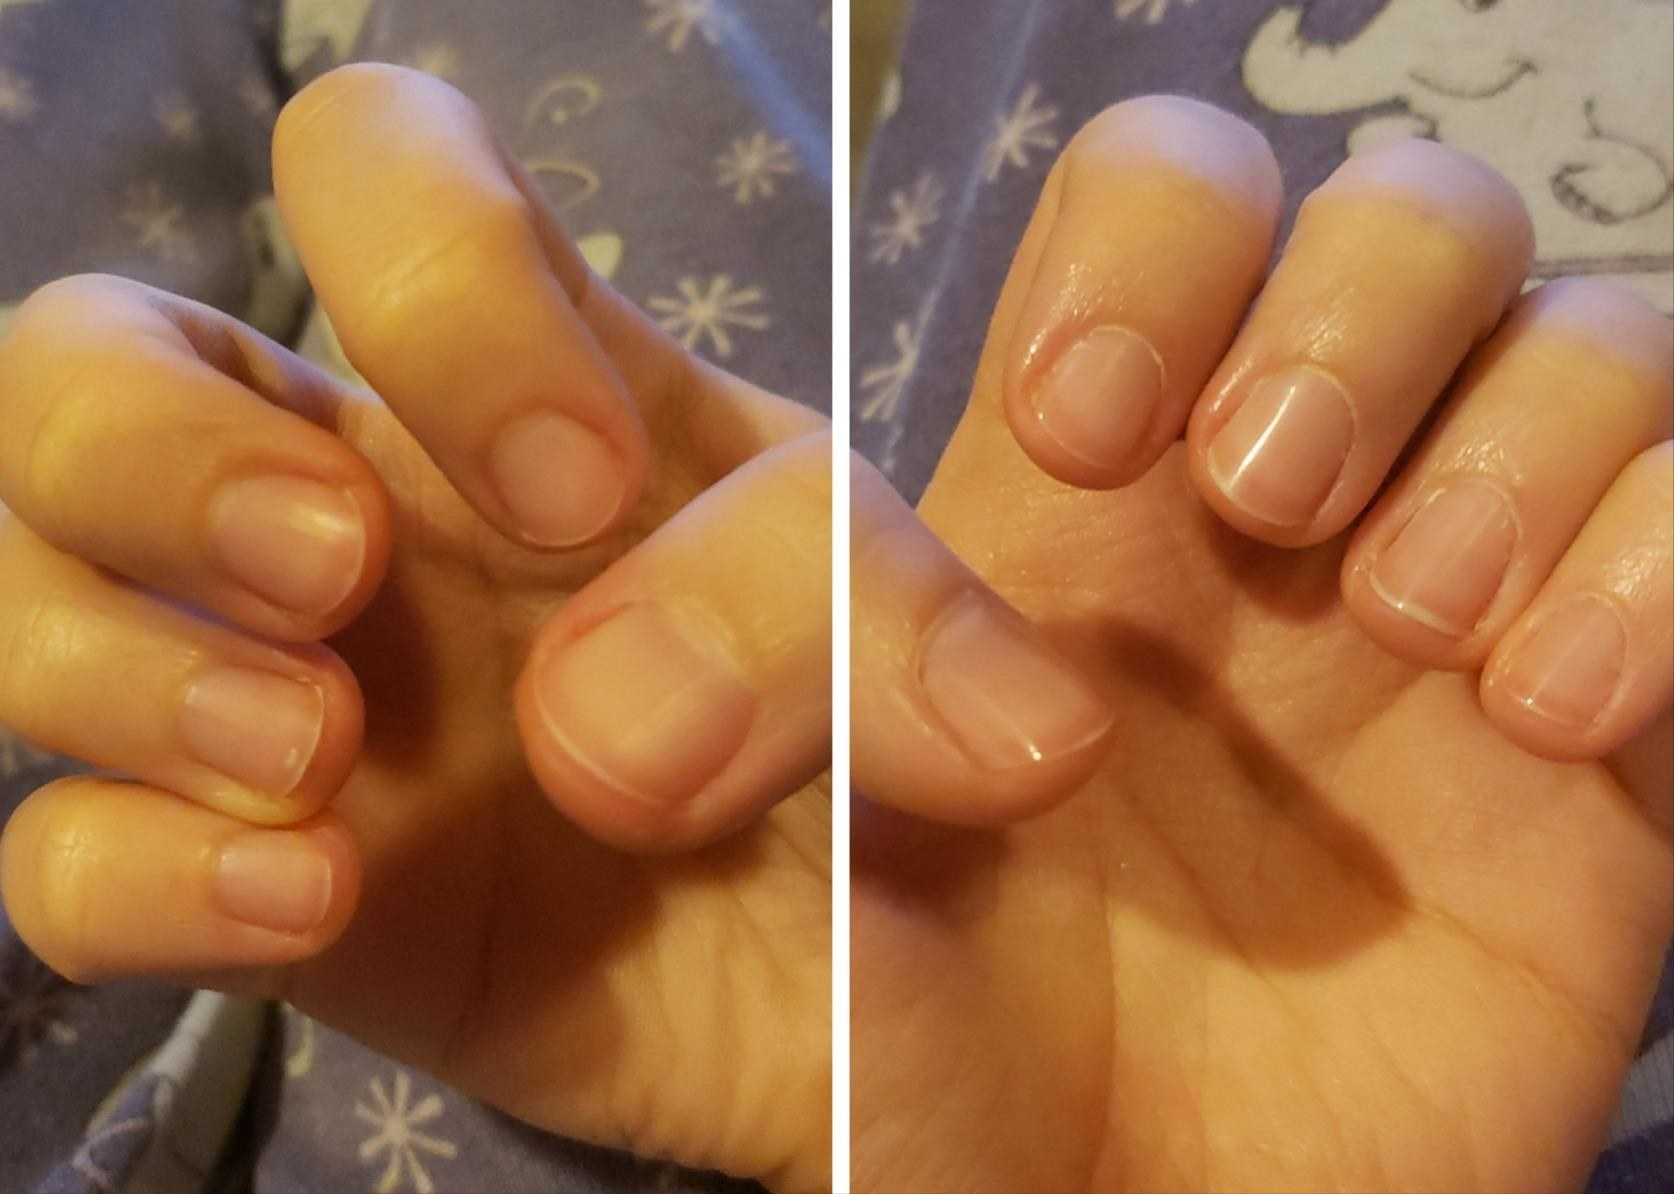 reviewer before-and-after photo showing their nails considerably shinier after using the nail file